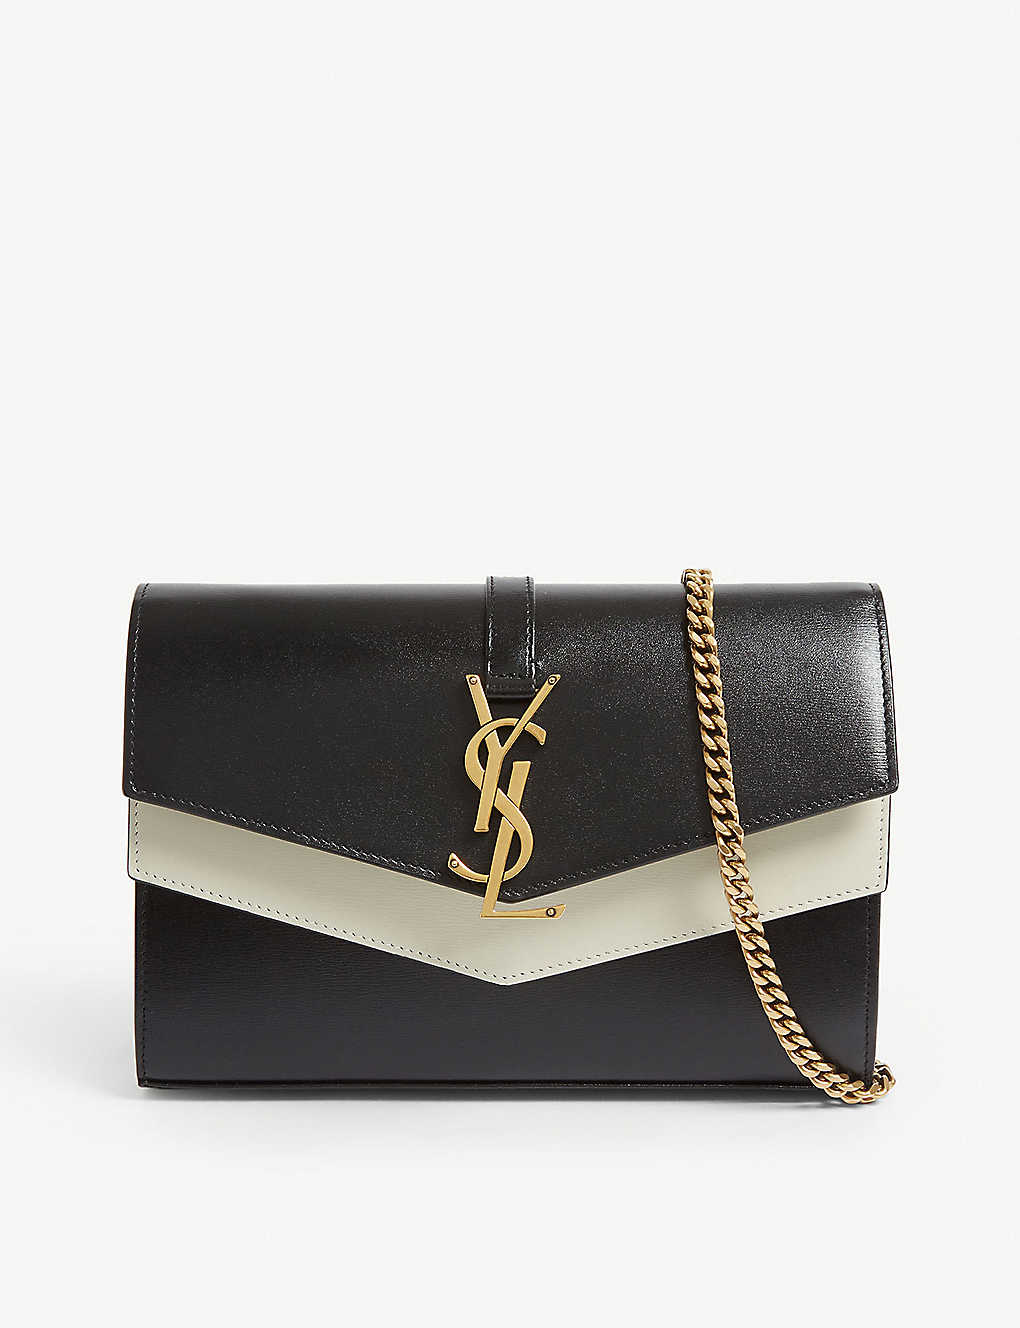 Laurent Wallet Saint On Sulpice Chain aqnEwdER8O